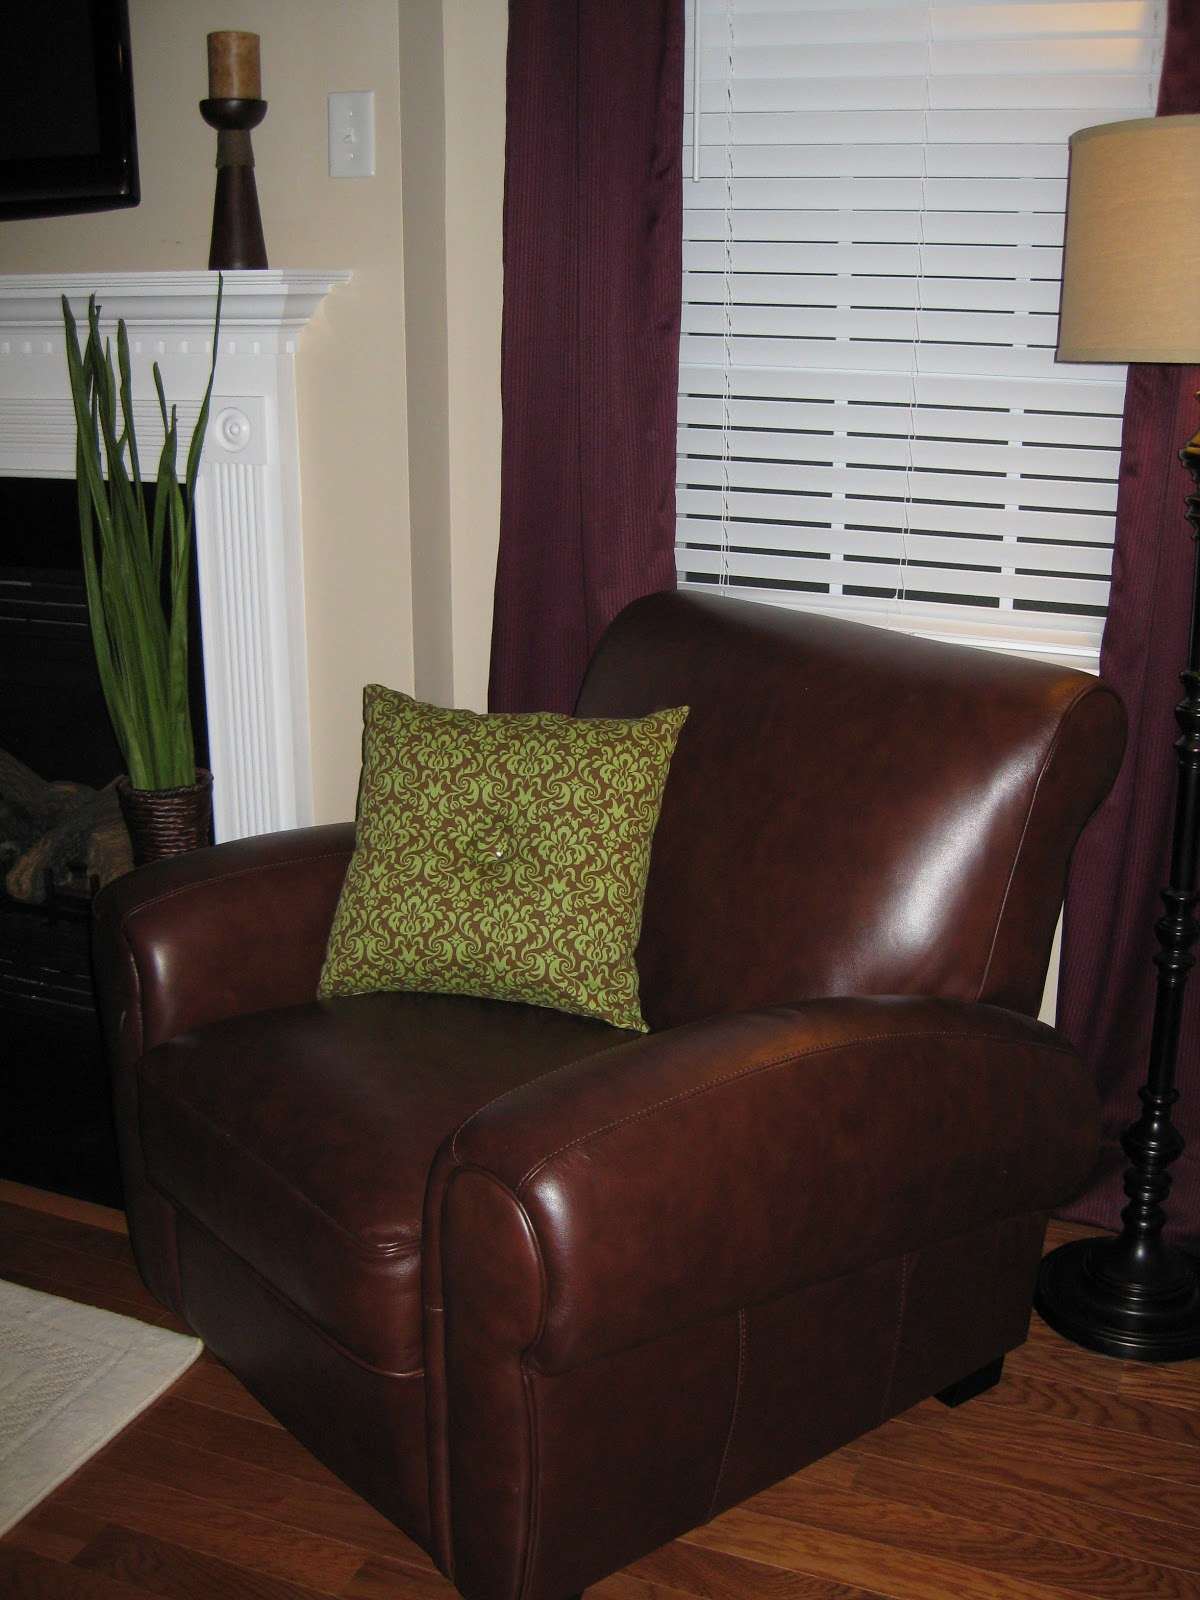 Homemade Living Room Pillows - LaForce Be With You